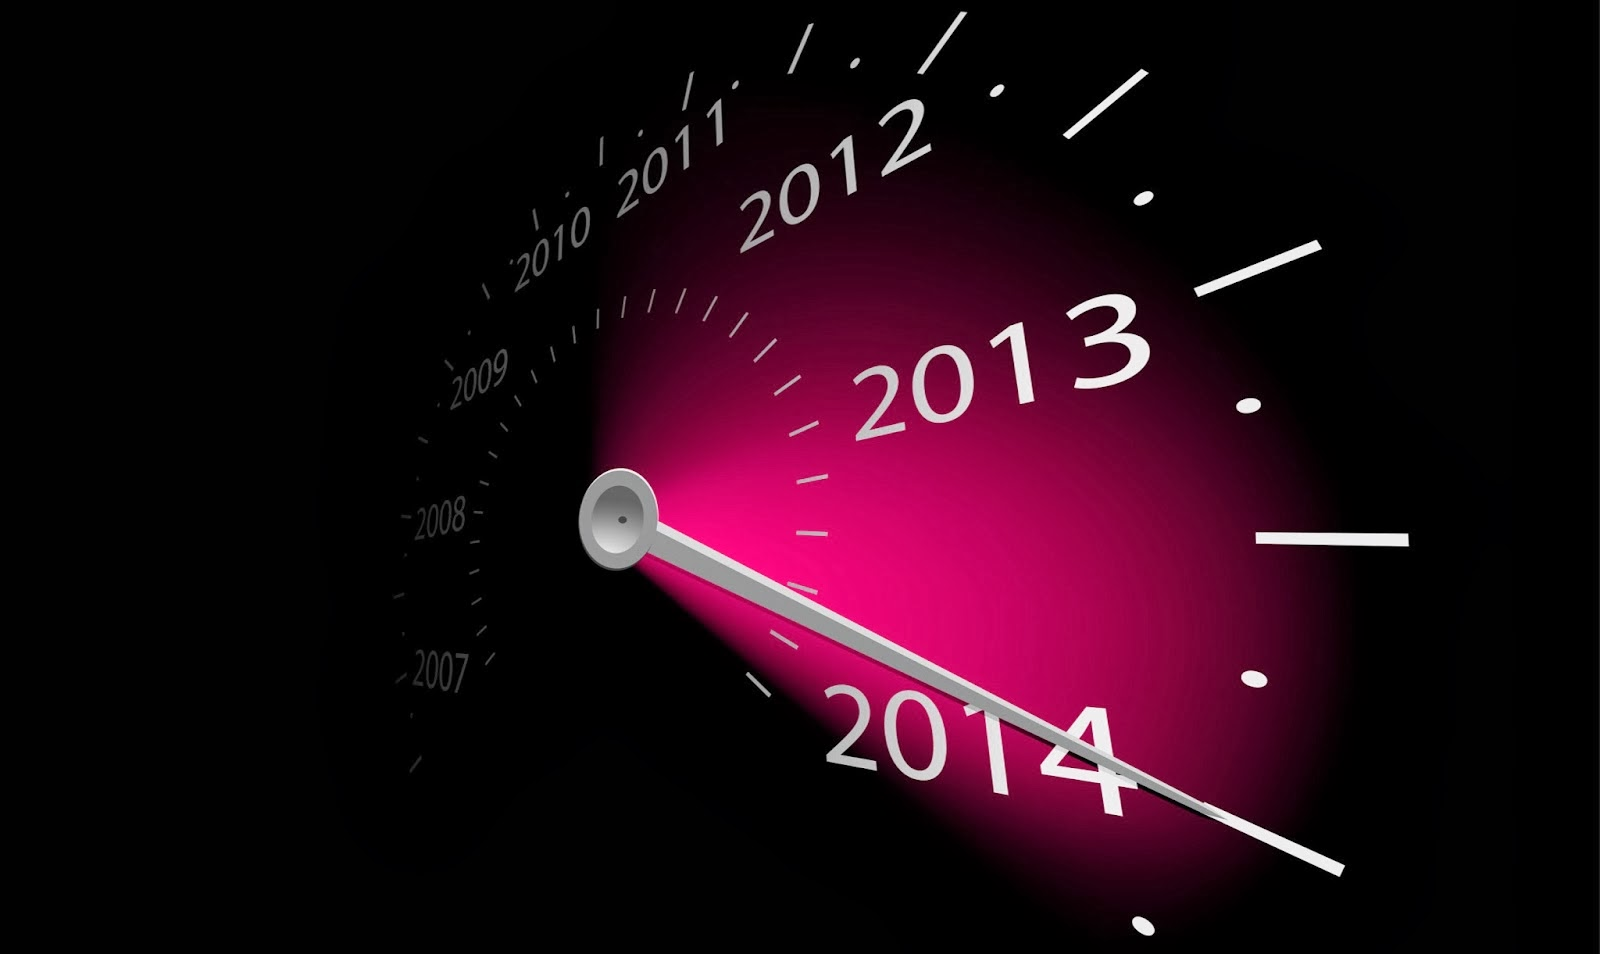 happy new year 2014 wallpaper collection free download (hd